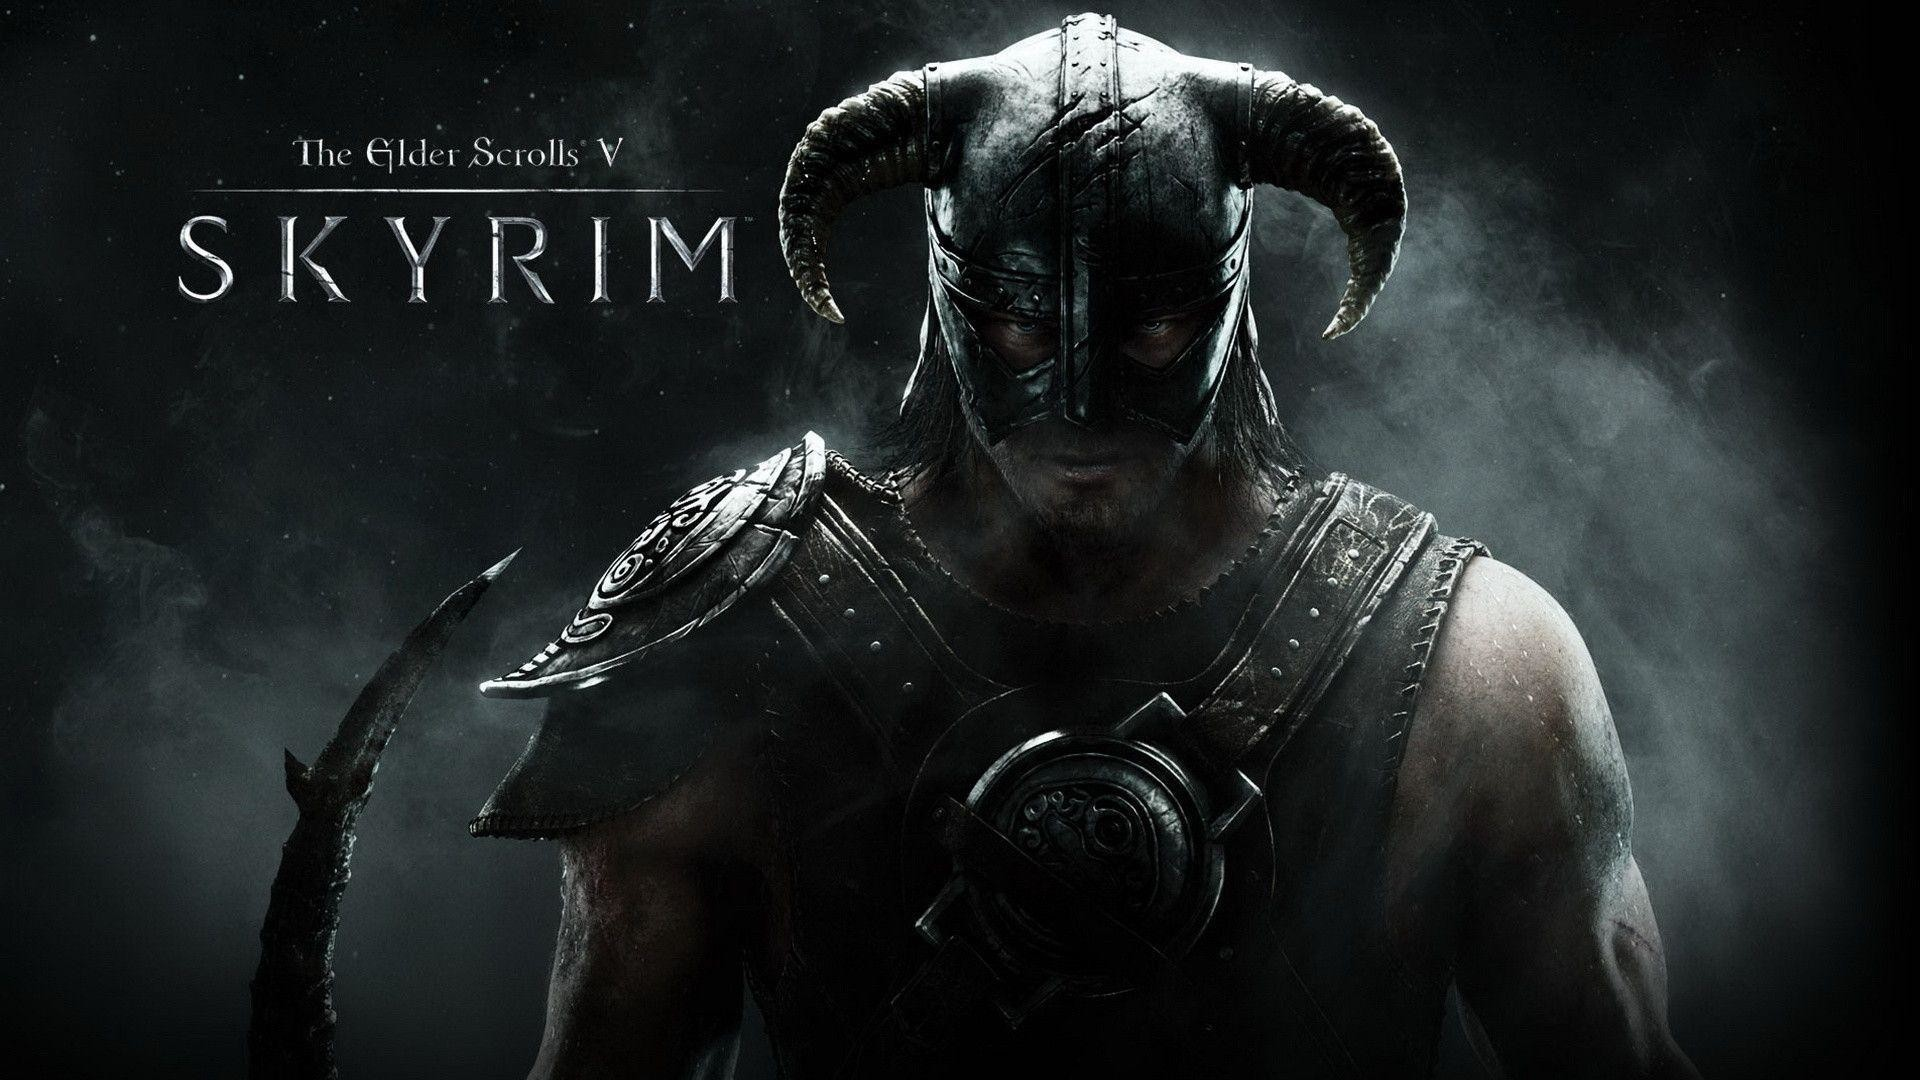 1920x1080 Wallpapers For > Skyrim Dawnguard Wallpaper